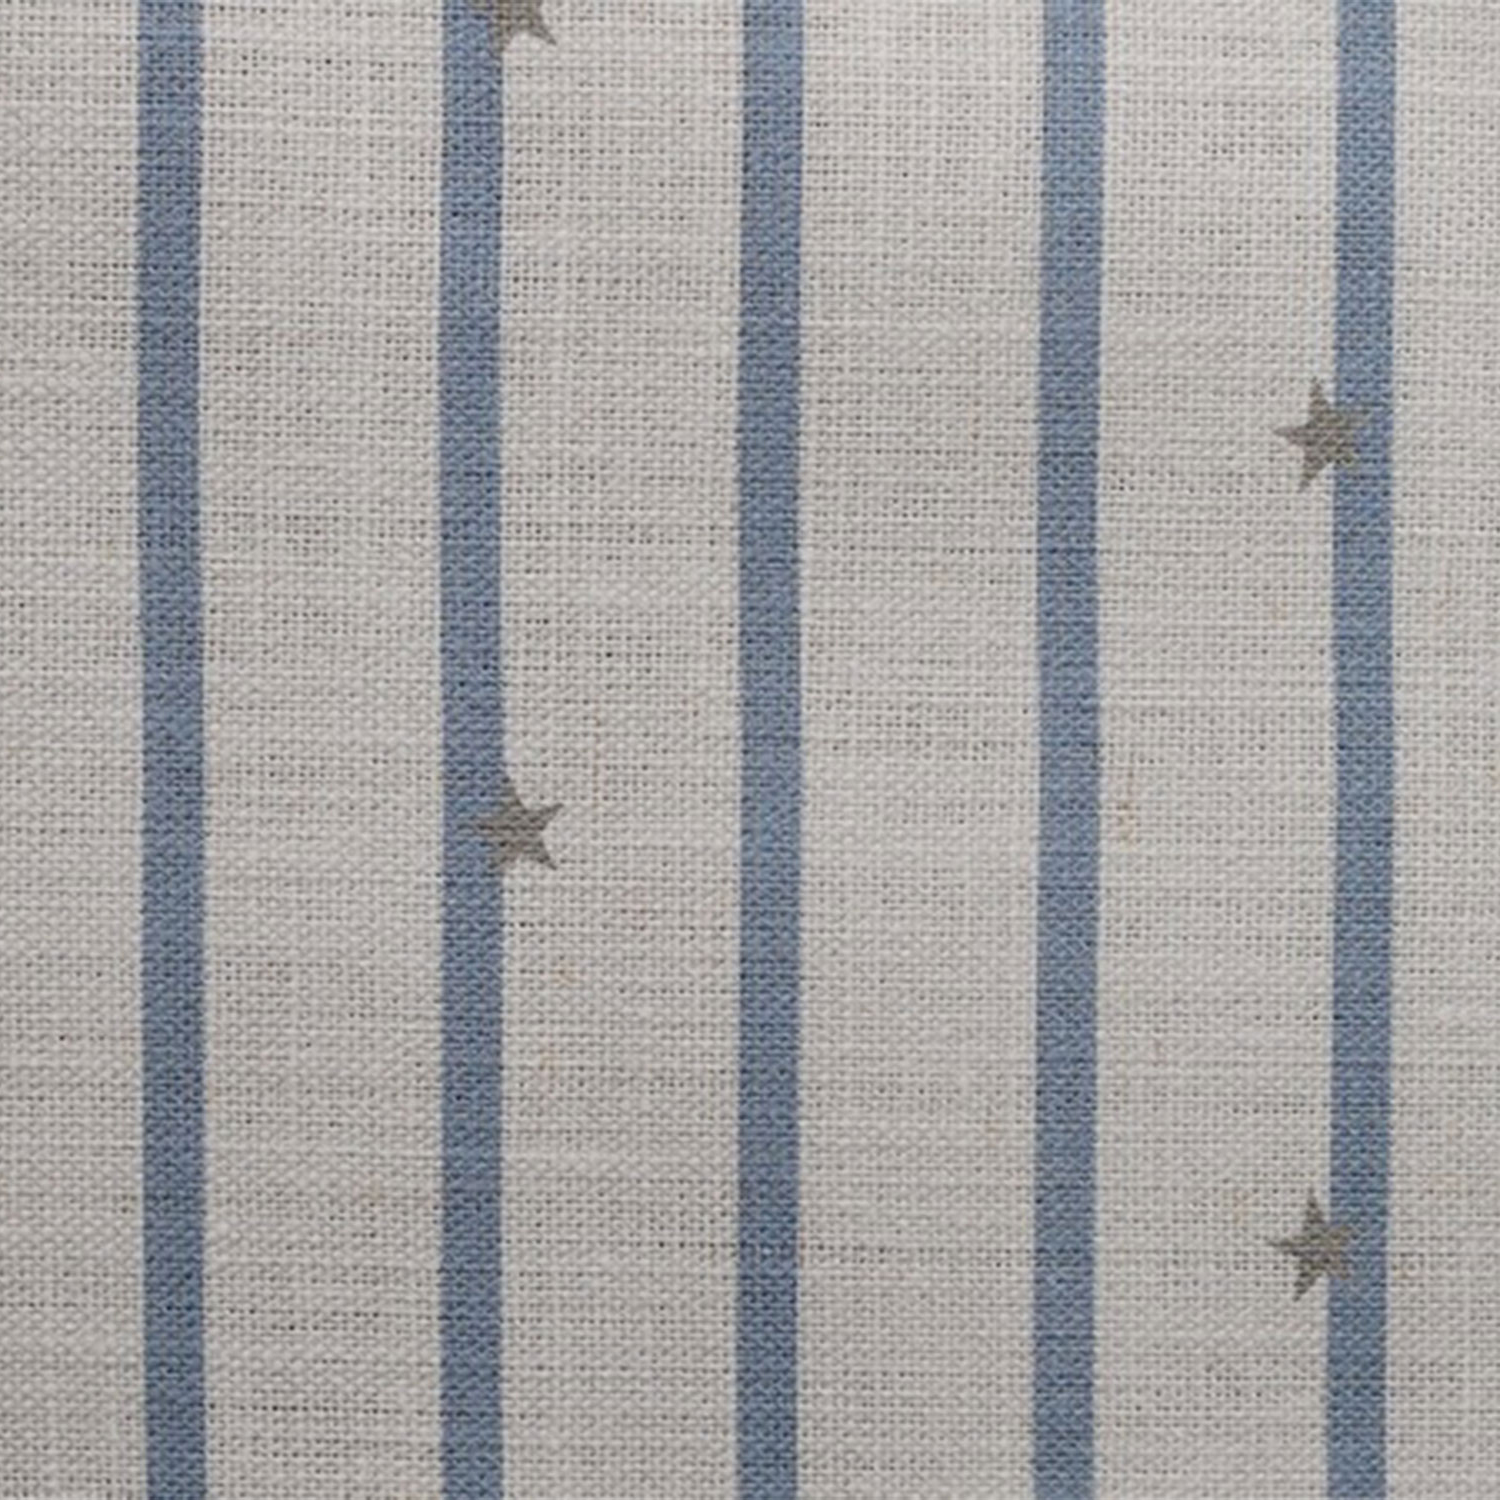 Stars & Stripes, Weathered Blue & Grey